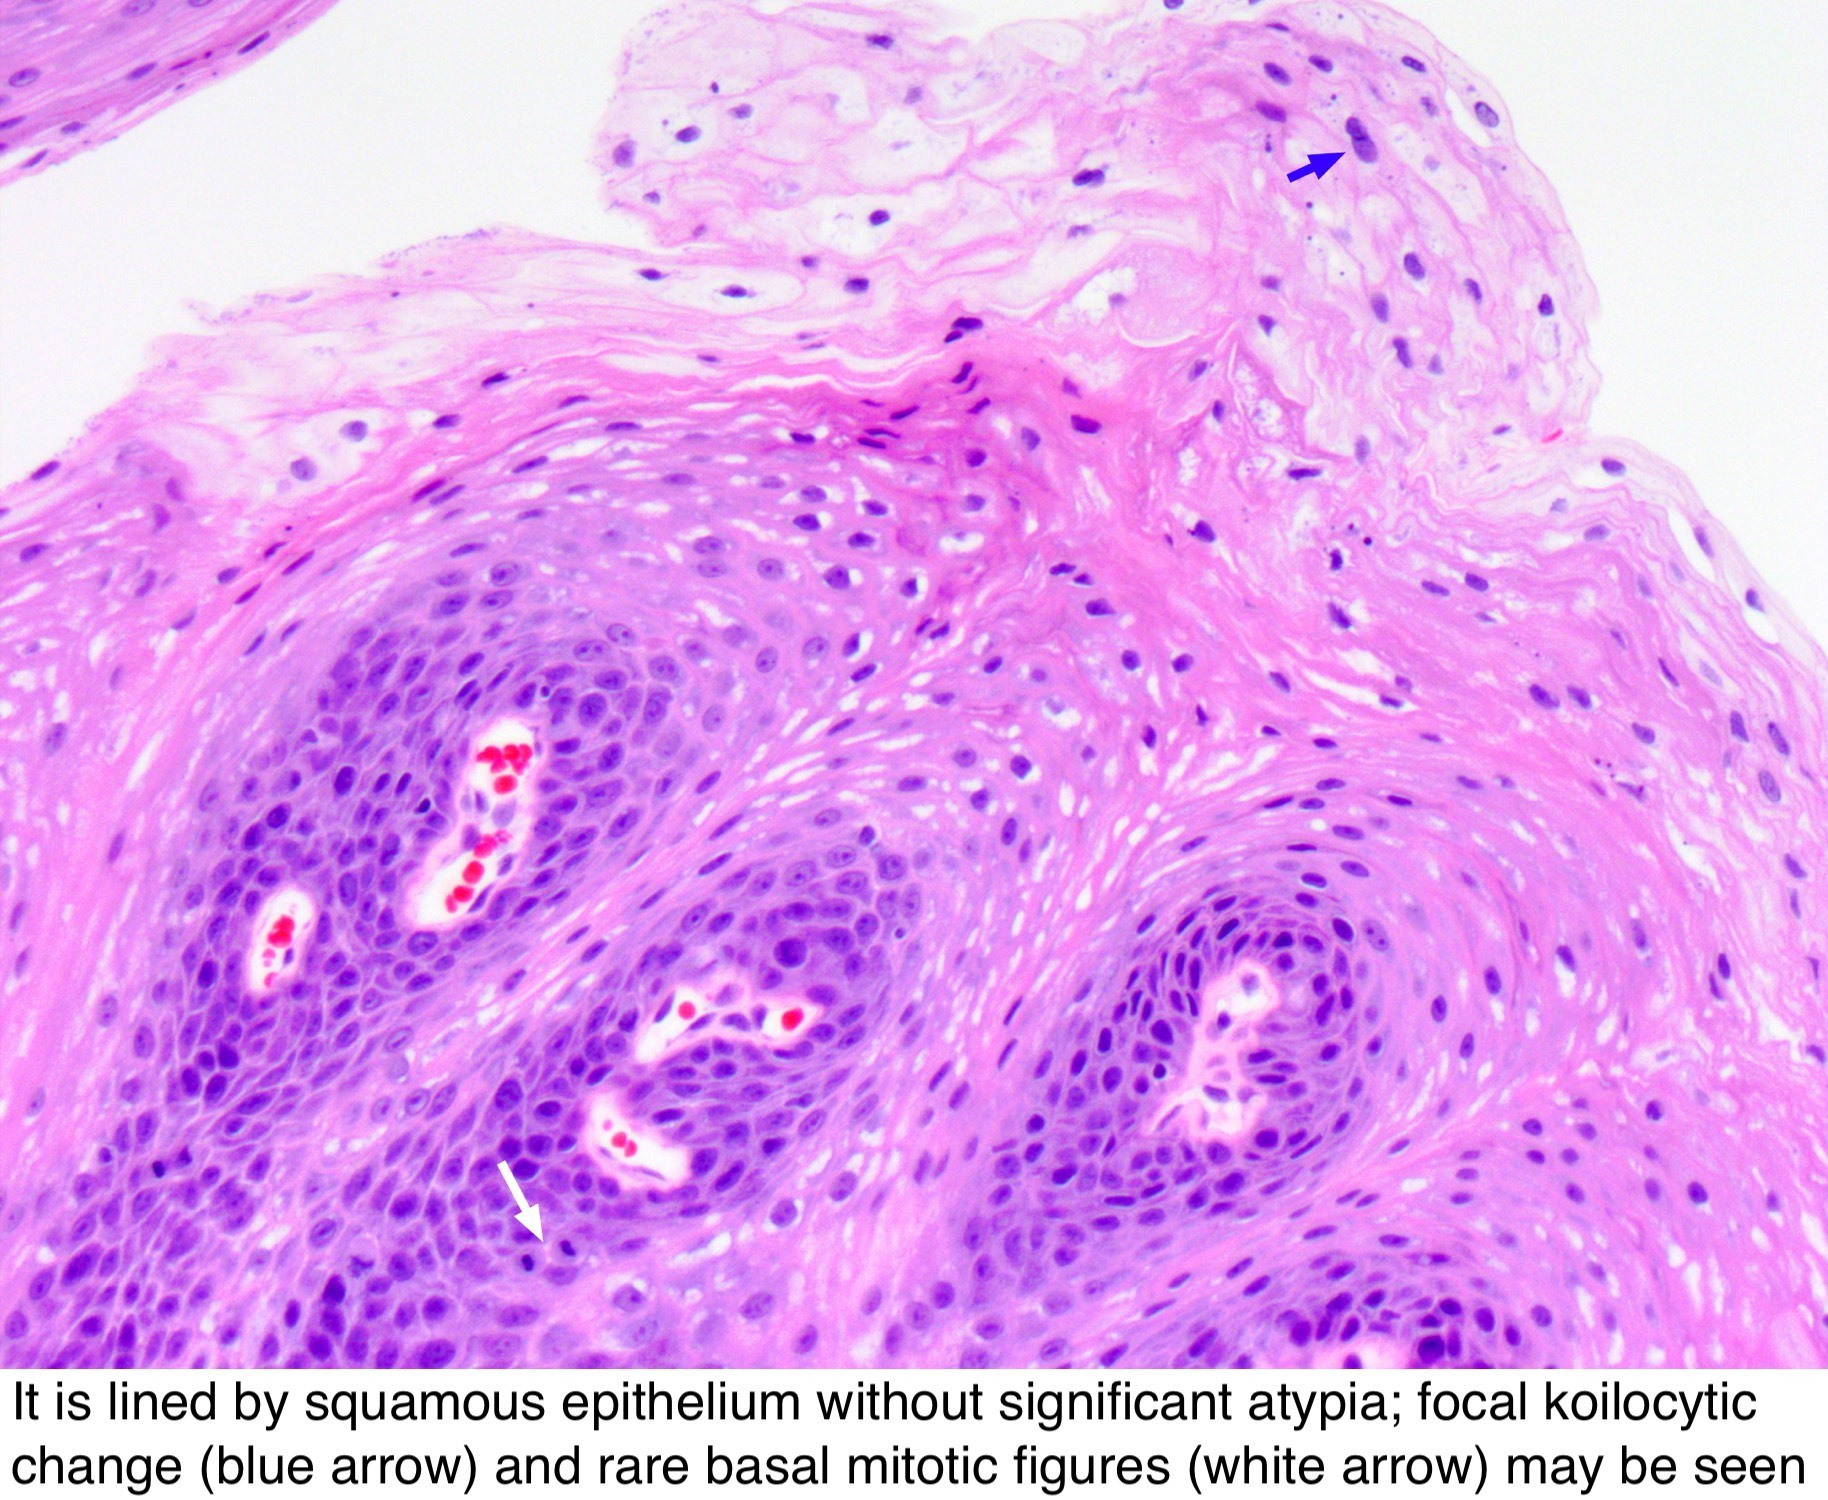 inverted papilloma nasal pathology outlines cancer of endometrial lining